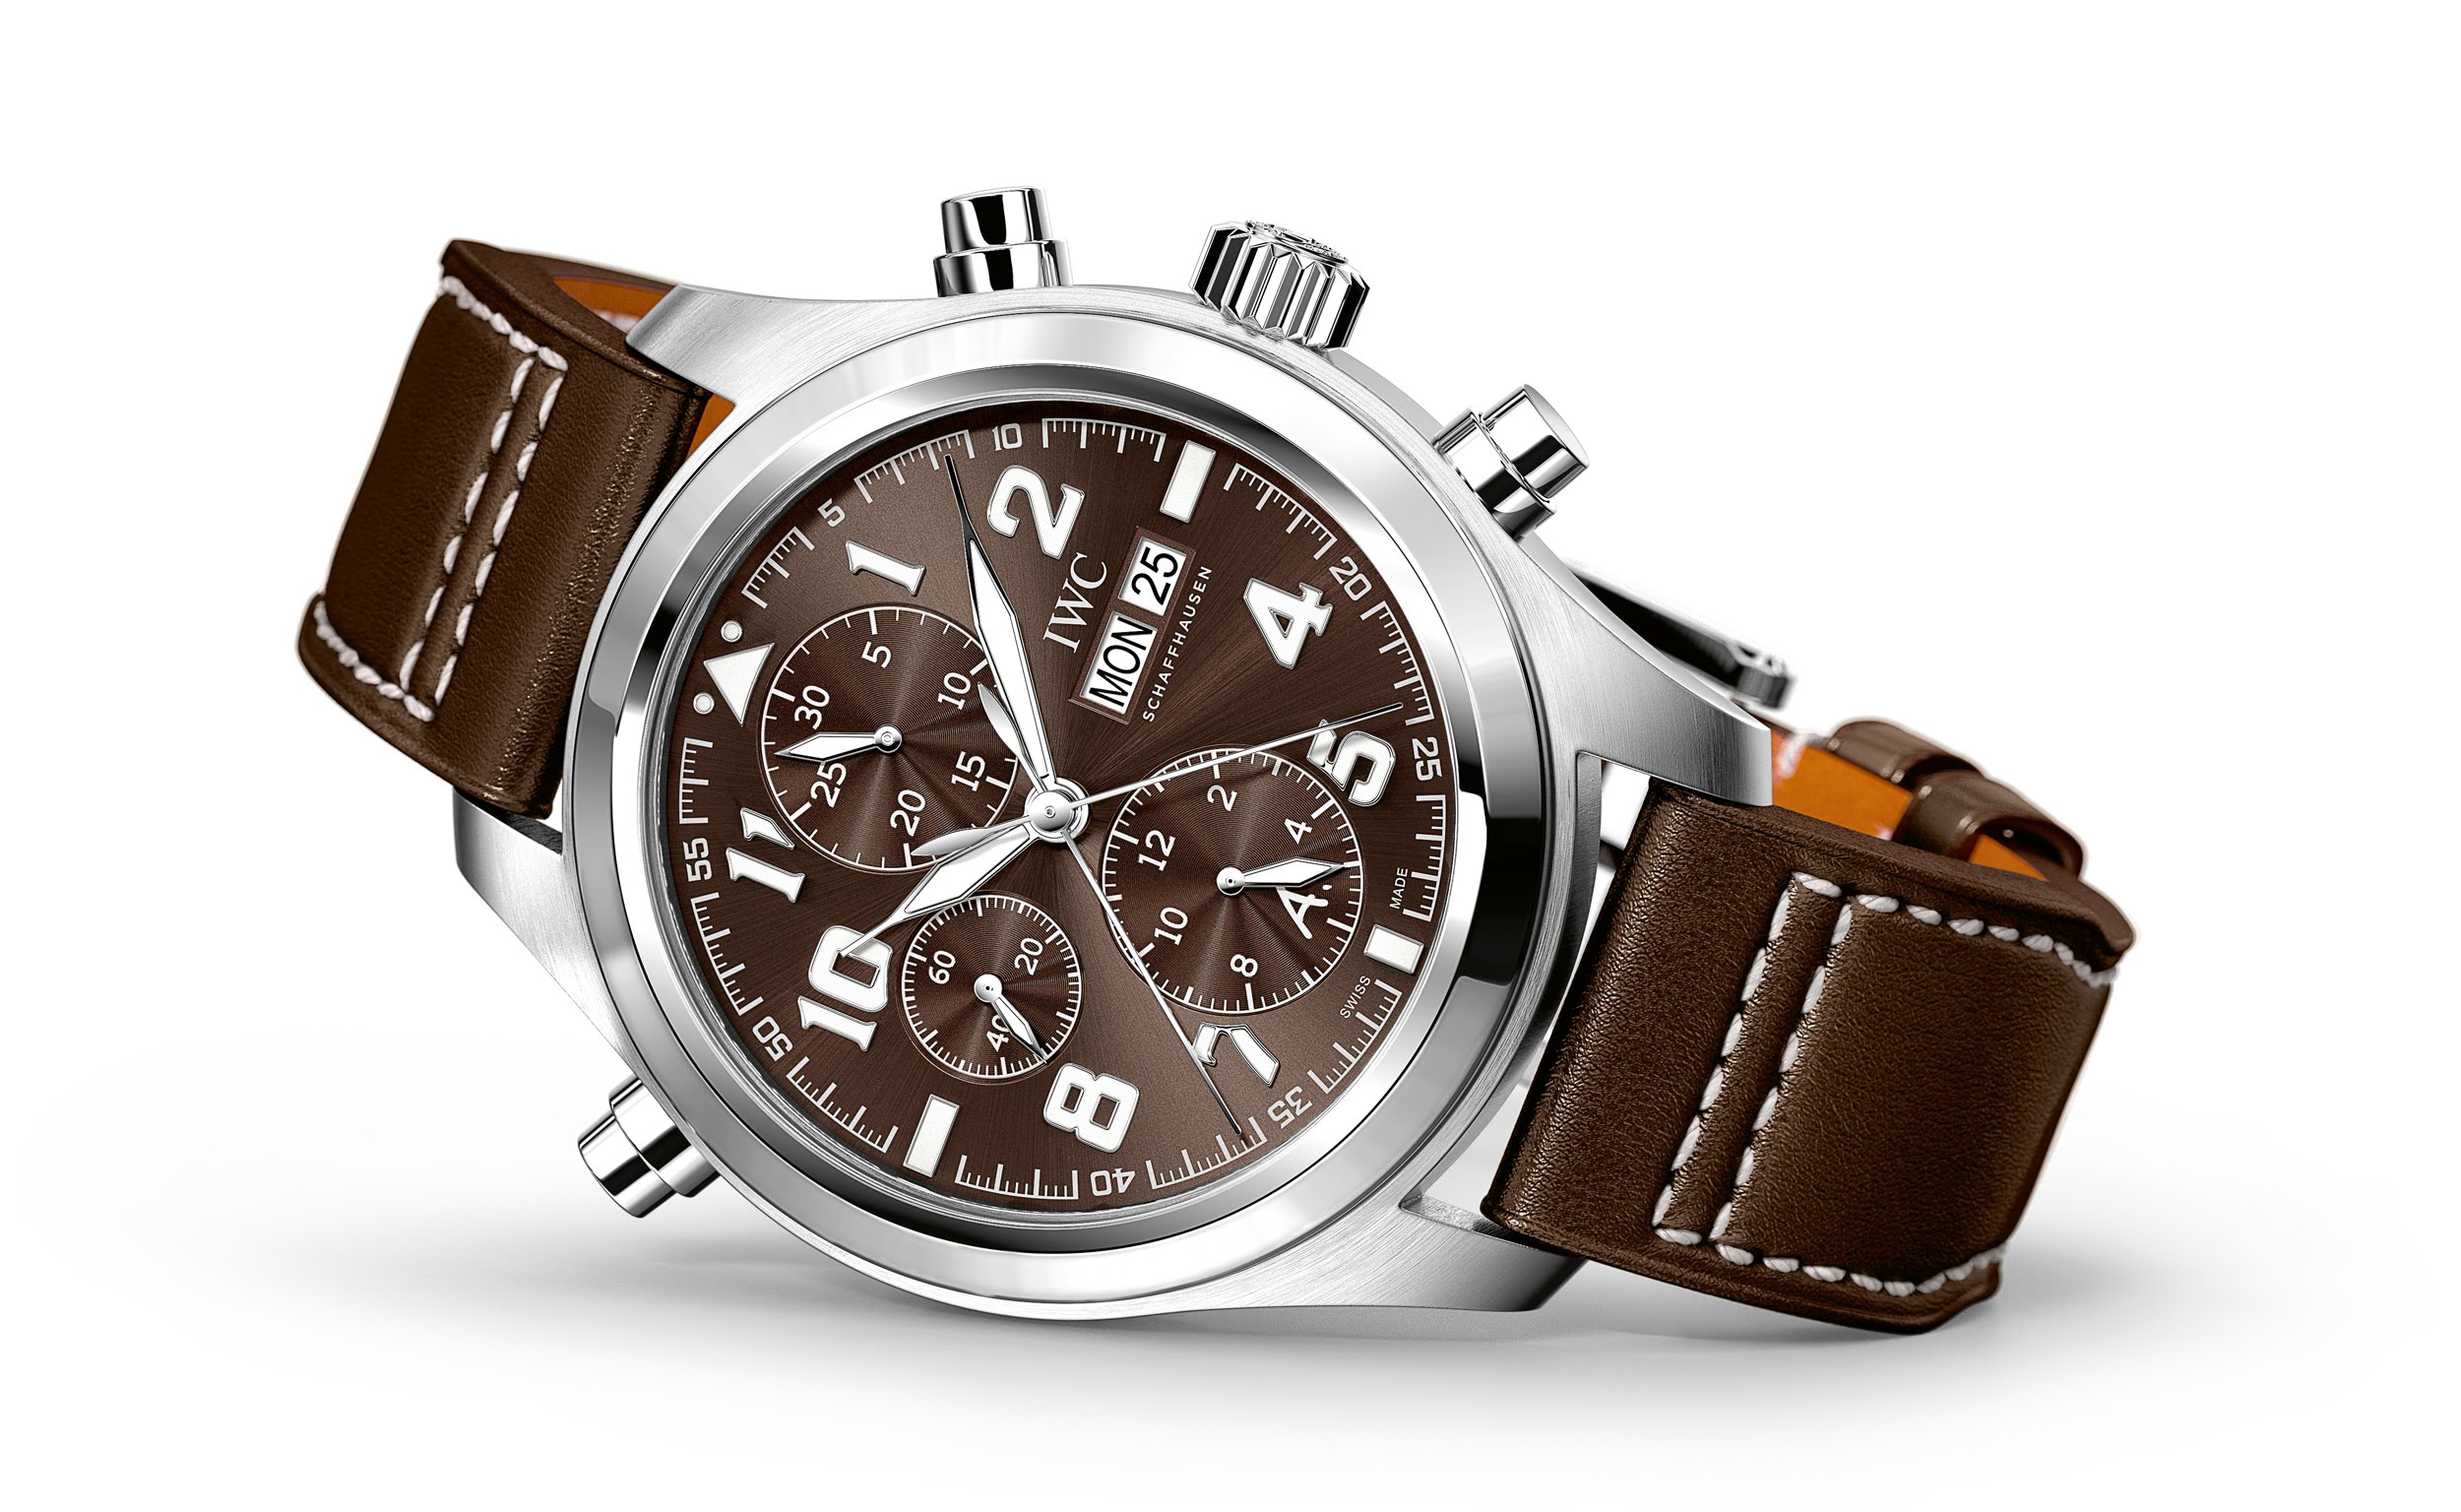 New iwc watch iwc double chronograph edition antoine de saint exupery replica watch best for Replica watches